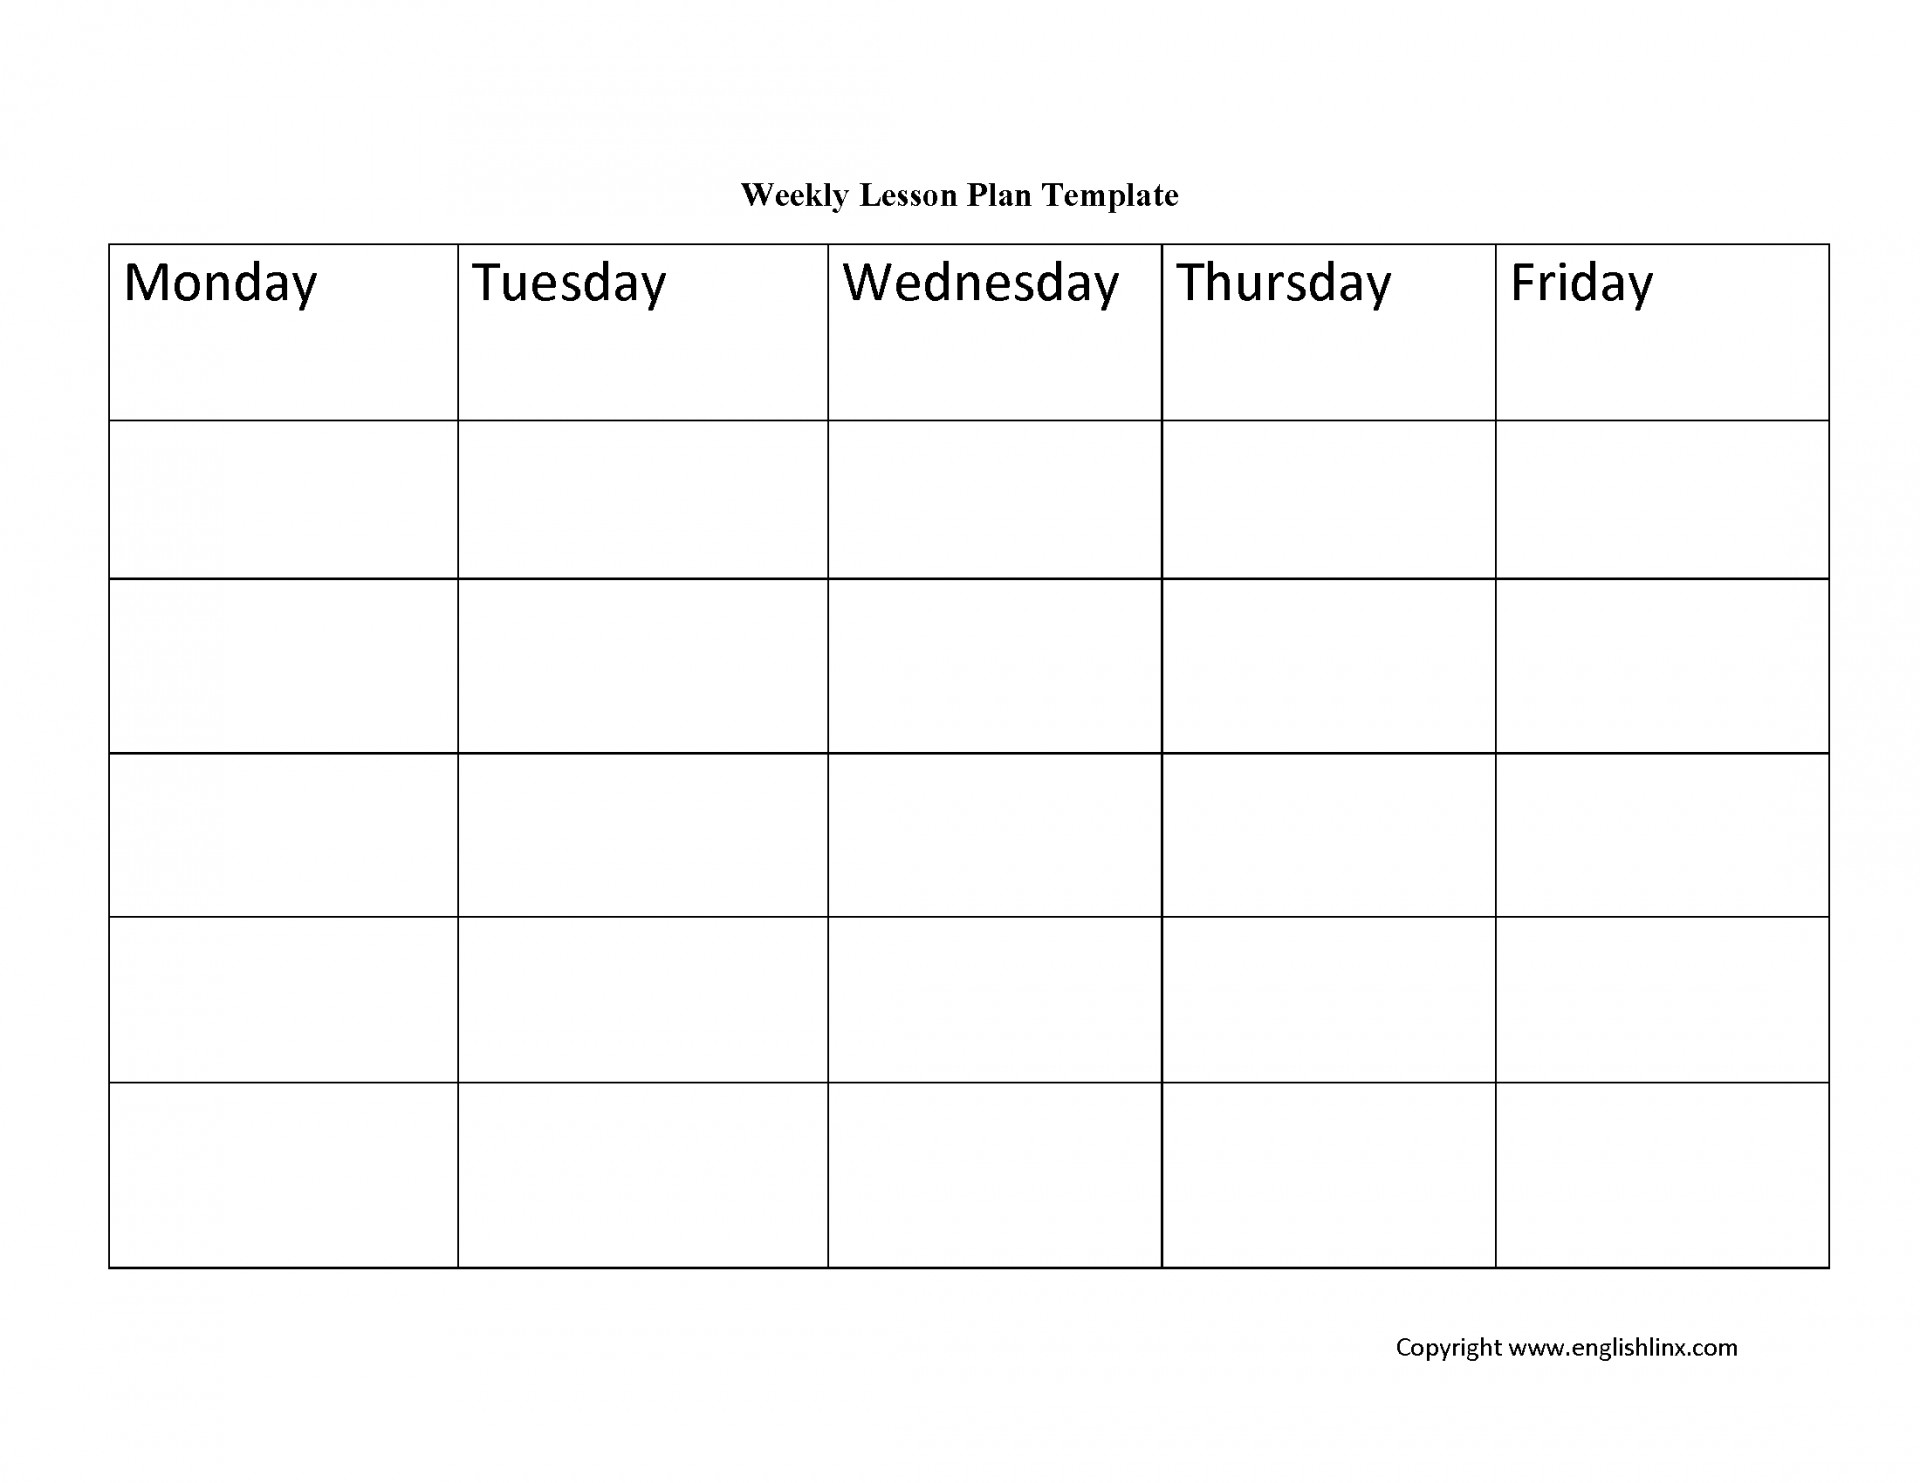 010 Monthly Lesson Plan Template 20Free Word Doc Meal Planner with regard to Weekly Calander Lesson Plan Template